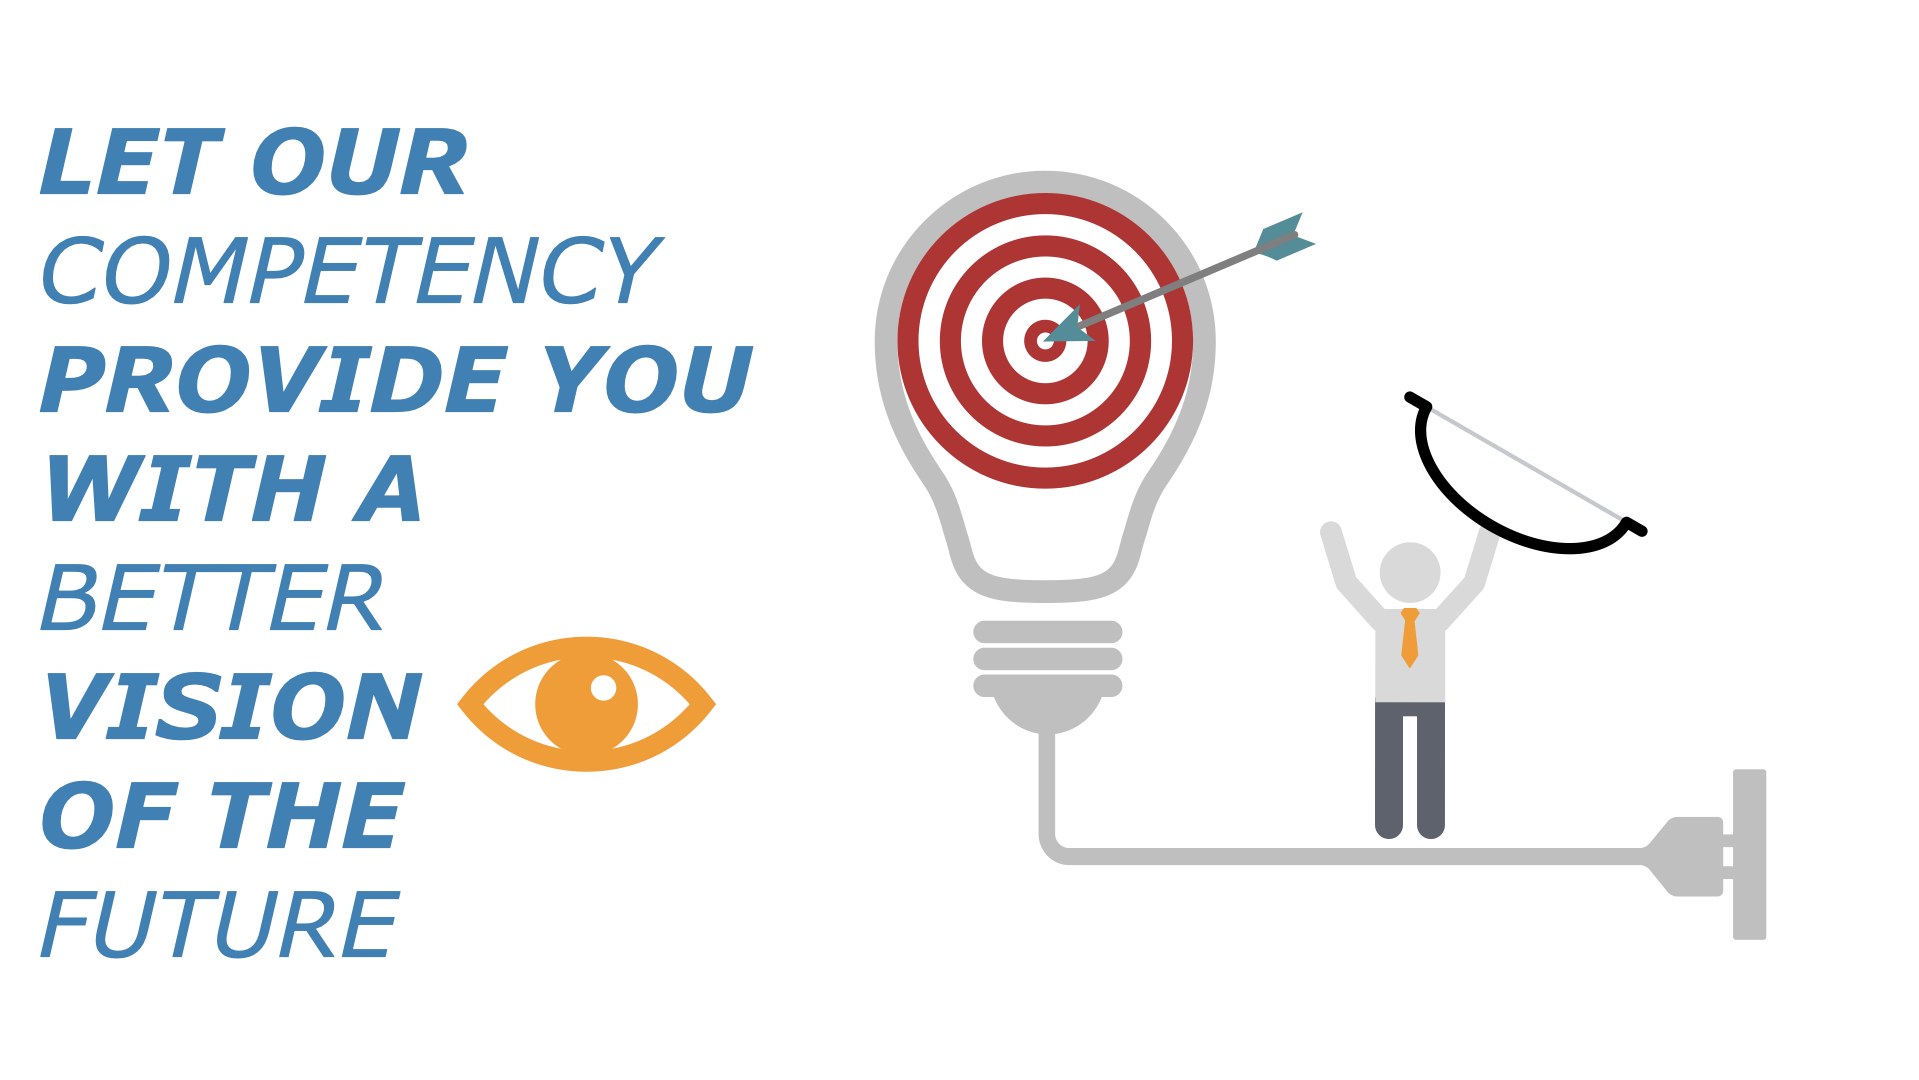 Let our competency provide you with a better vision of the future